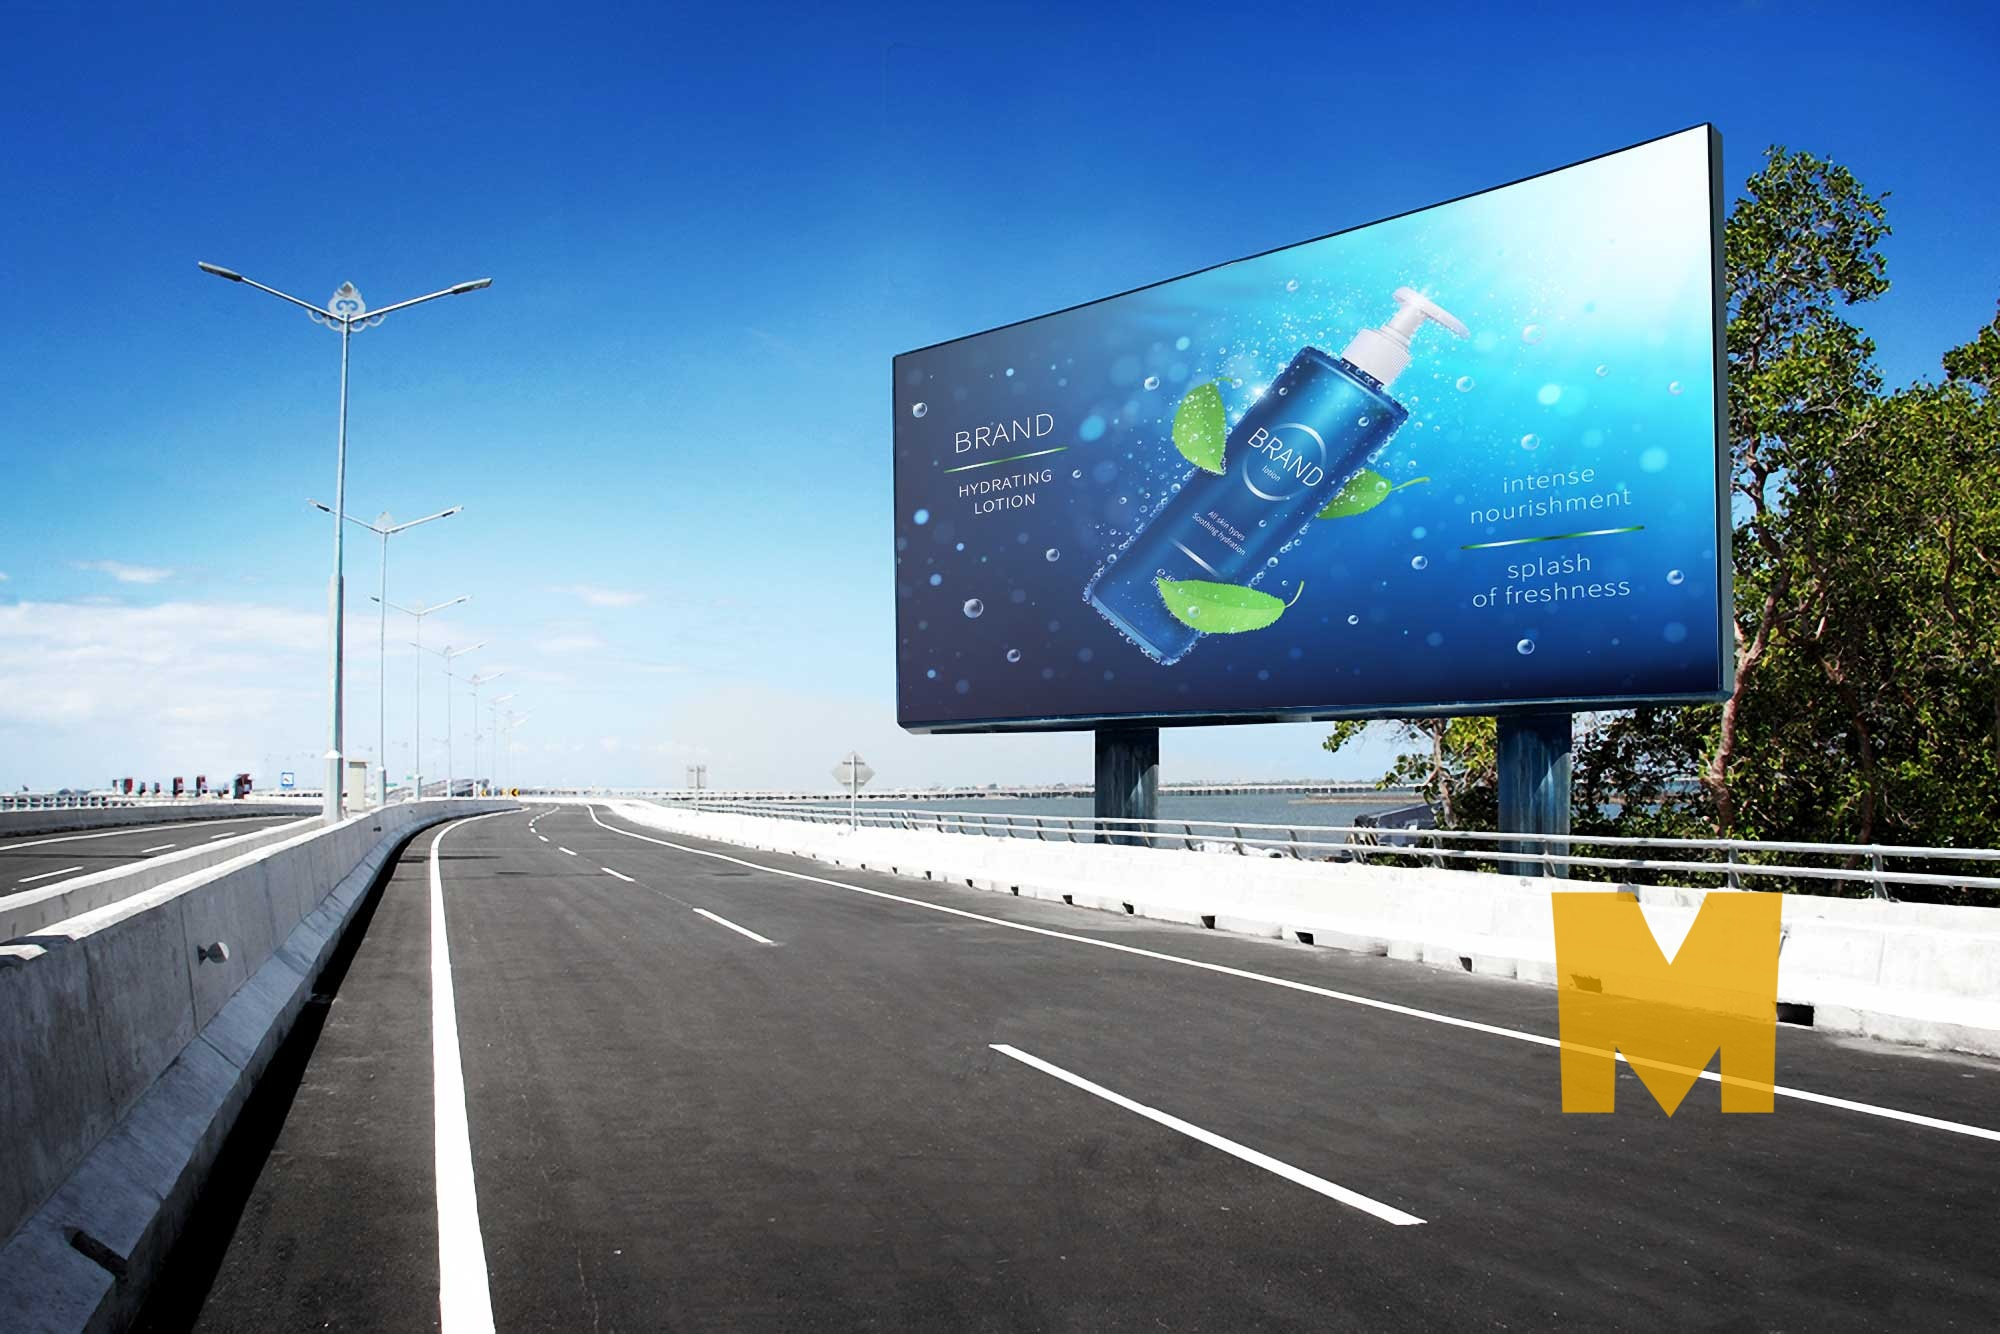 Roadside Advertising Billboard Mockup